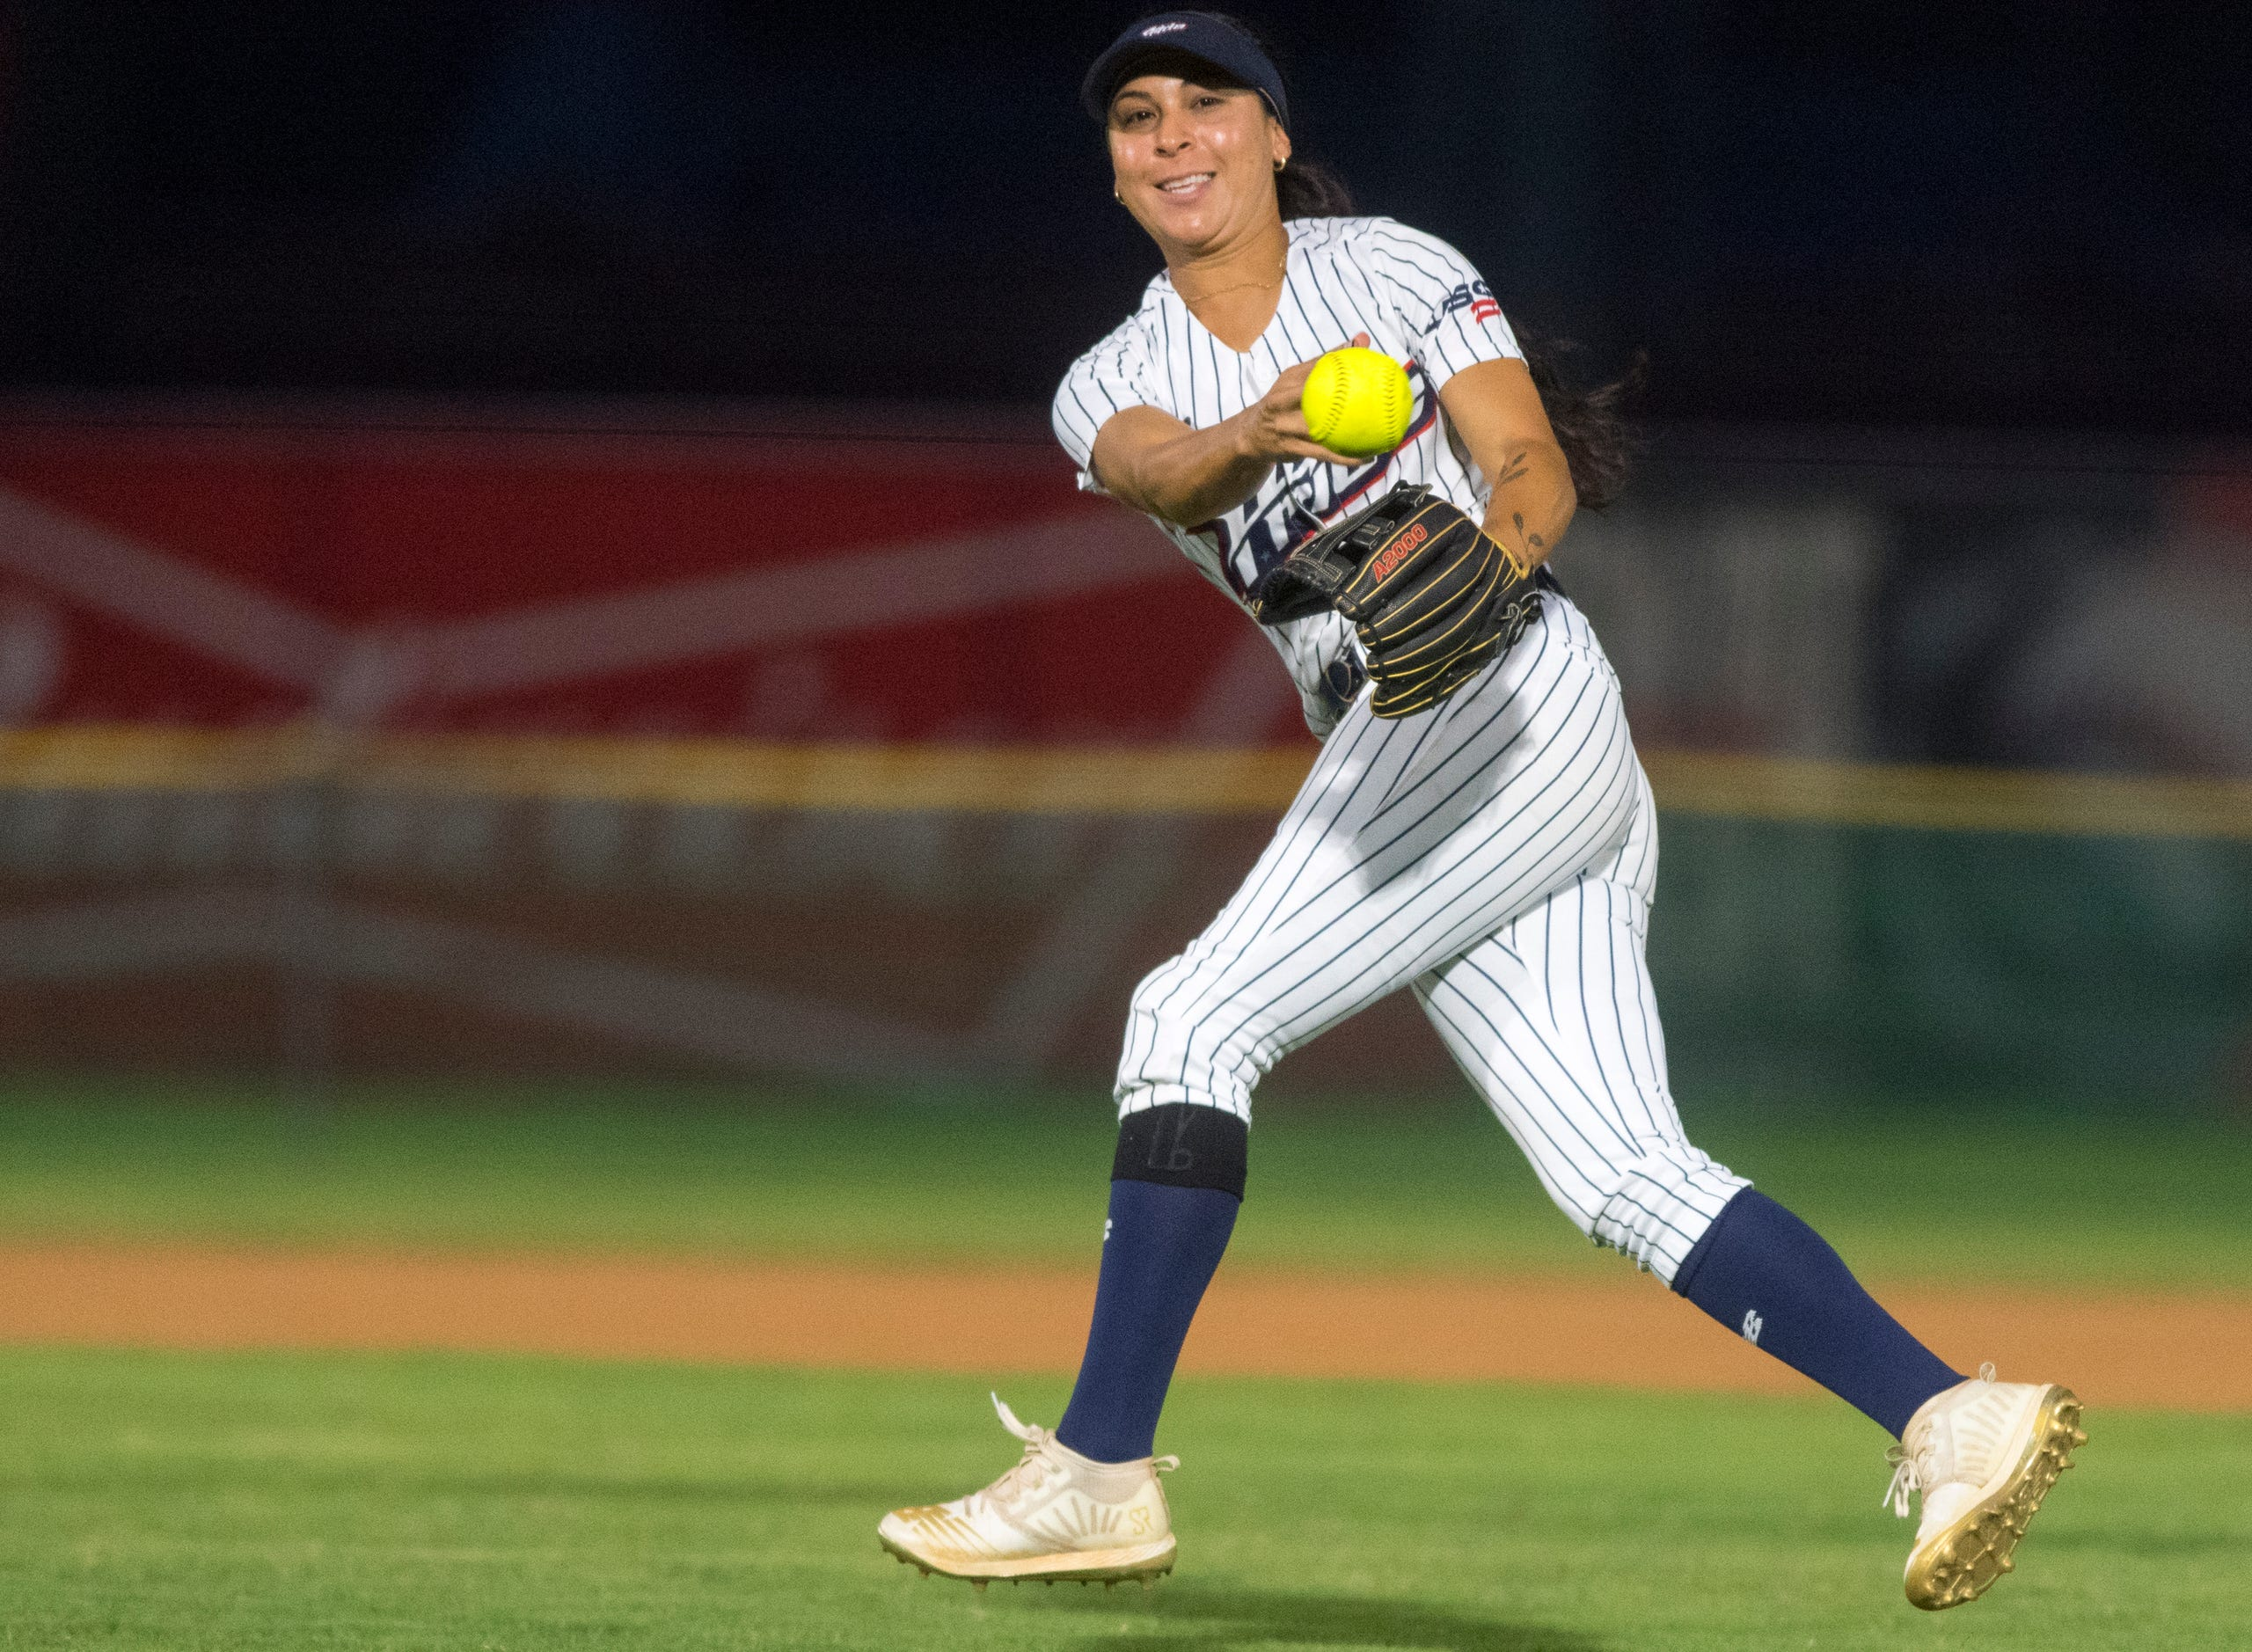 USSSA Pride's Sierra Romero (32) throws to first as the USSSA Pride takes on Team Florida in an exhibition game at Bosse Field in Evansville, Ind., Wednesday evening, July 14, 2021.